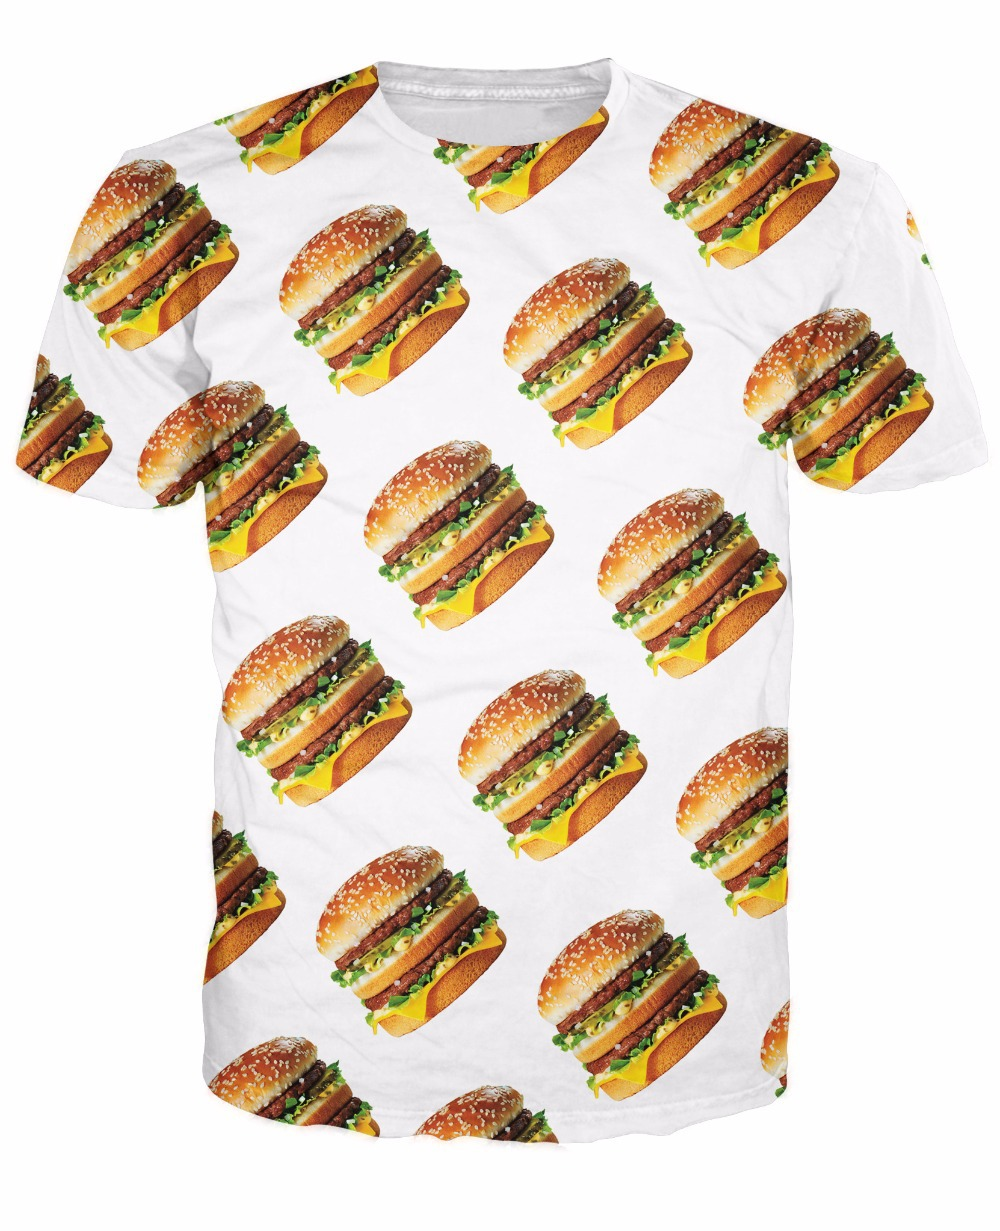 T shirt design quick delivery - Big Mac T Shirt The Famous Fast Food Cheeseburger 3d Print Casaul T Shirt Summer Style Fashion Clothing Tops Tee For Women Men